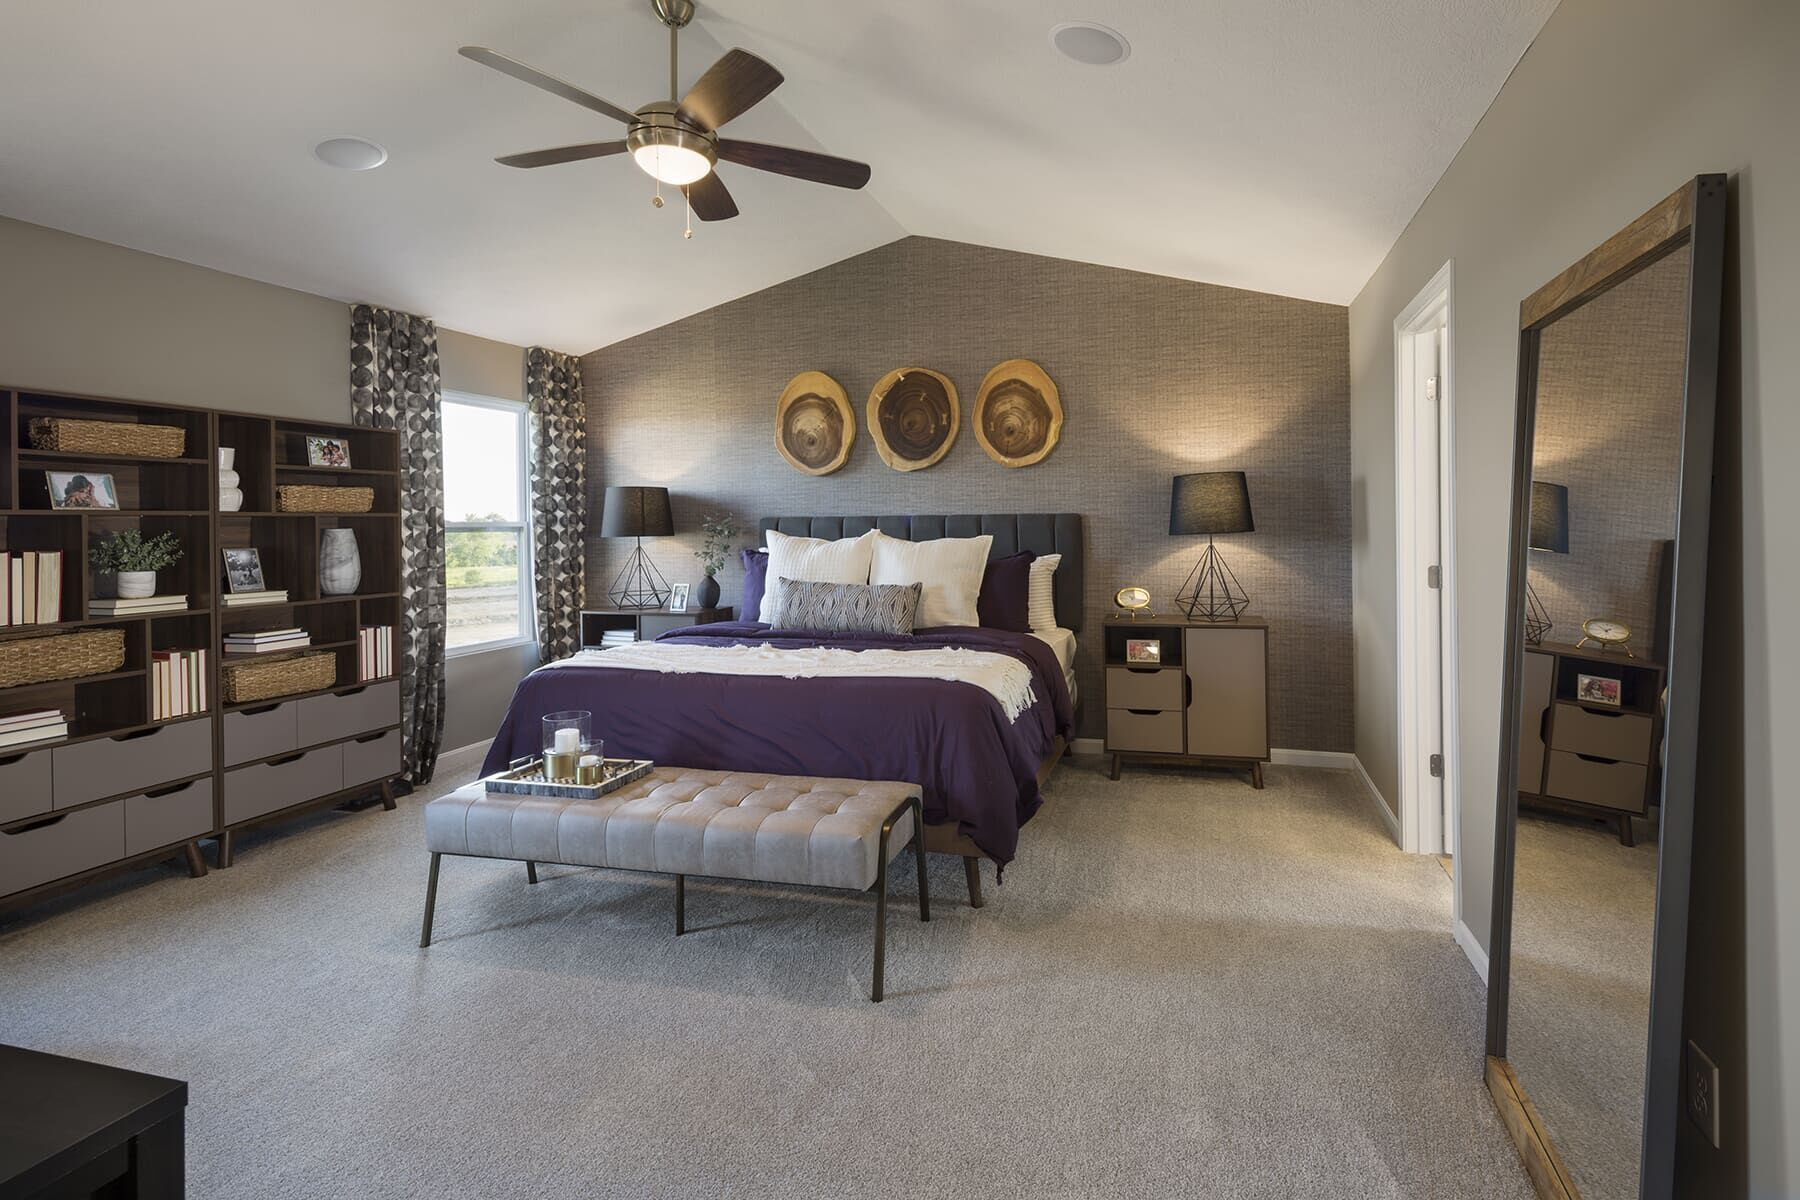 Bedroom featured in the Salinger By M/I Homes in Cincinnati, OH